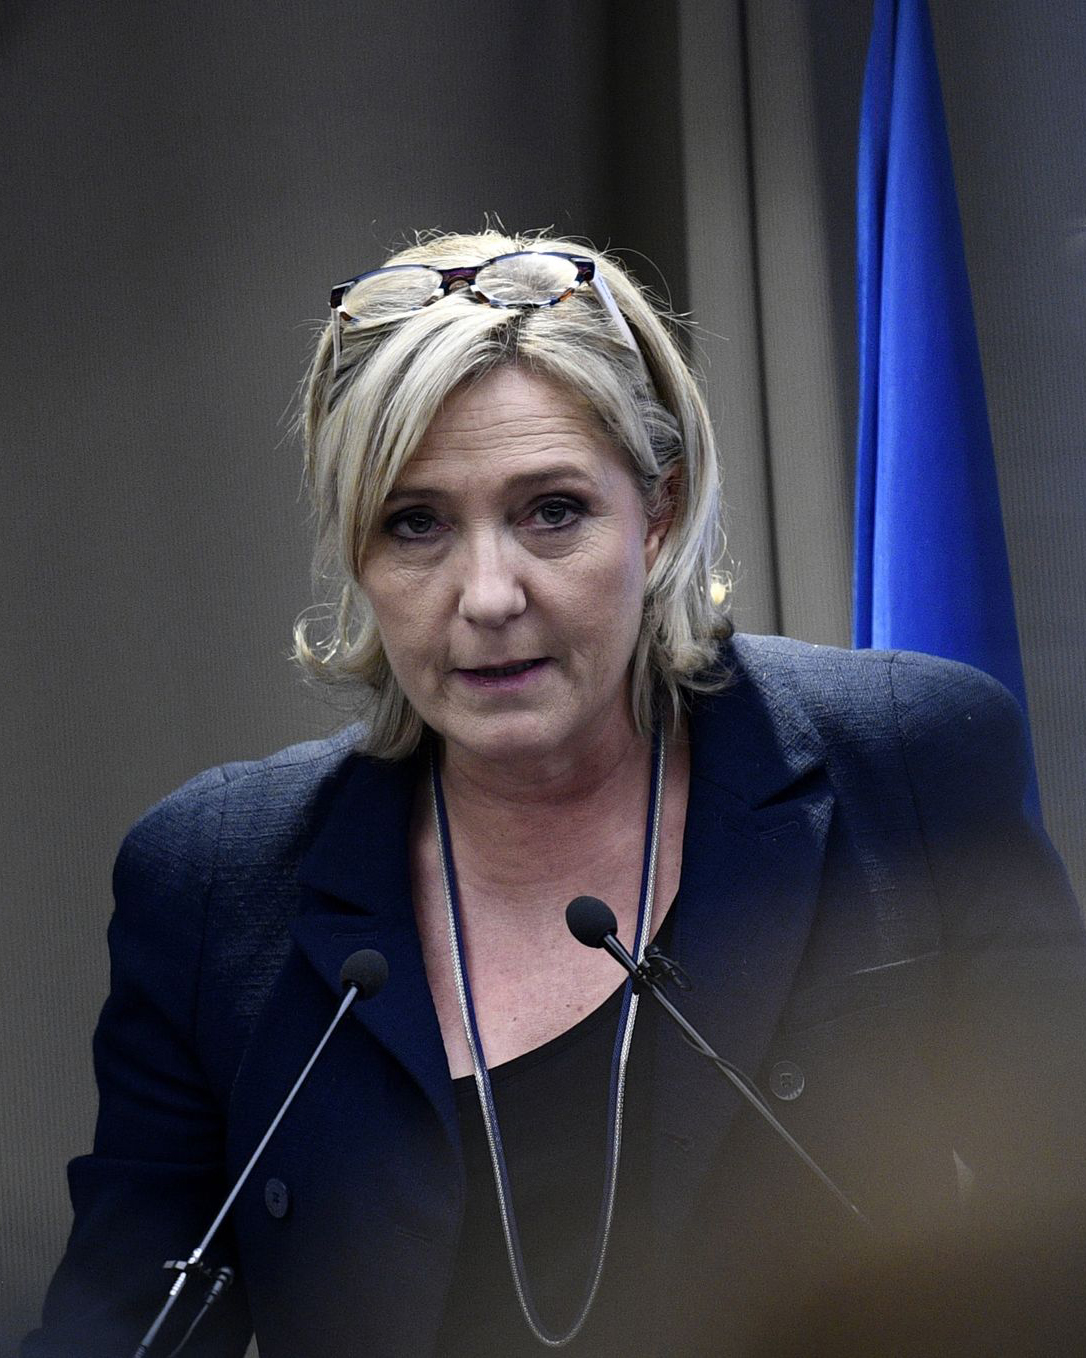 French far-right Front National (FN) party president, member of European Parliament and candidate for France's 2017 presidential election, Marine Le Pen delivers a speech during a meeting about healthcare, on December 9, 2016 in Paris. / AFP PHOTO / MARTIN BUREAU